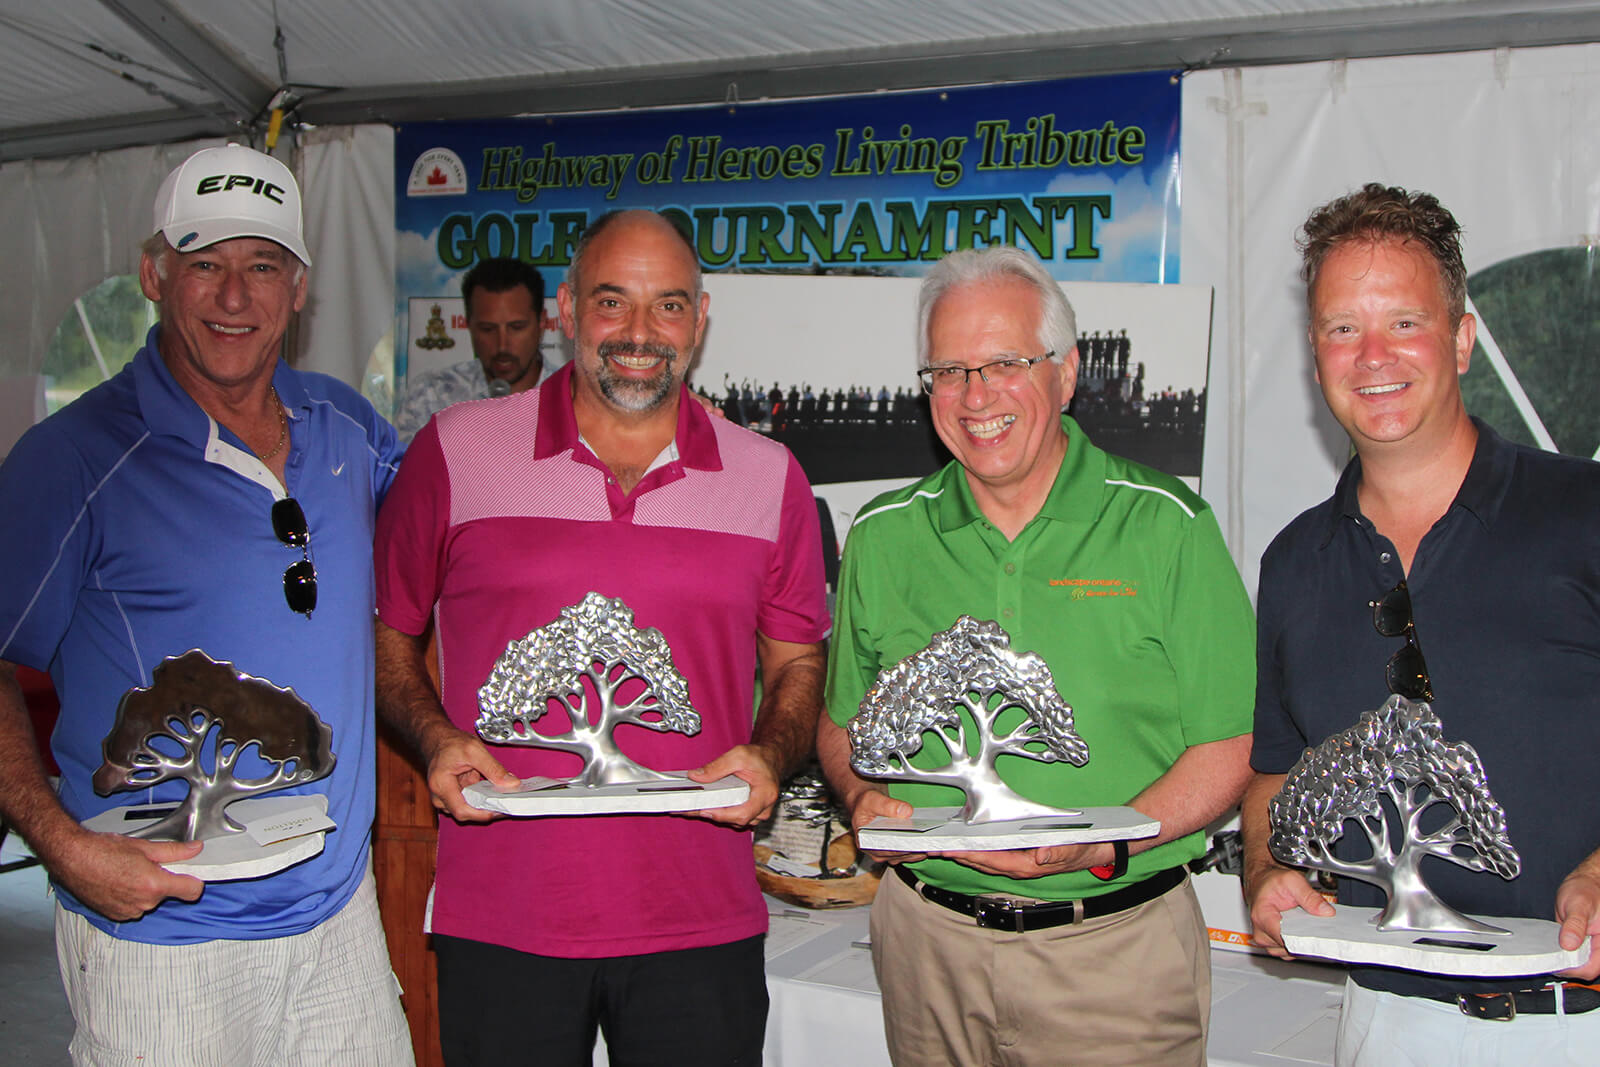 The winning foursome: Paul Rosenberg, Joe Morello, Tony DiGiovanni and Craig Stovel.